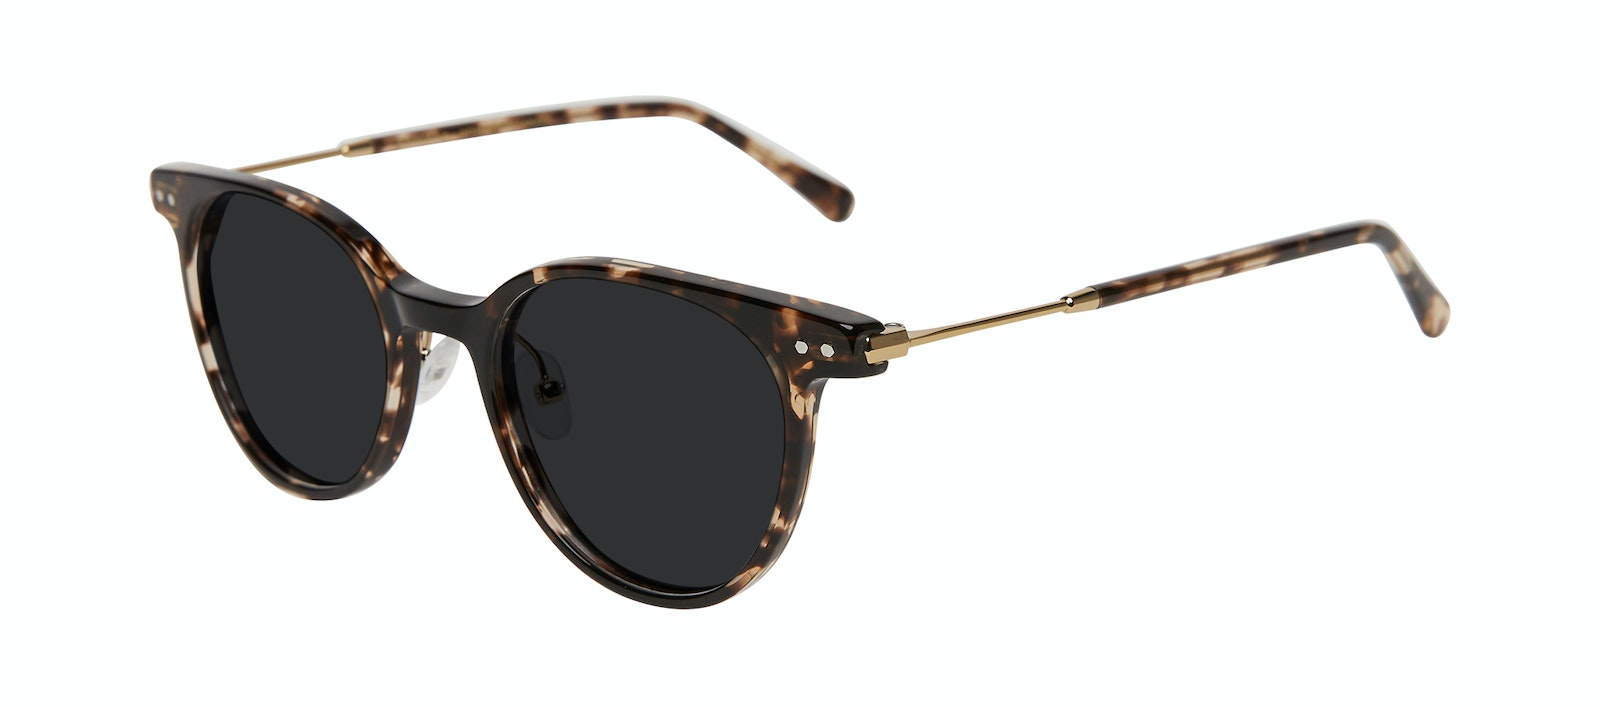 Affordable Fashion Glasses Round Sunglasses Women Lightheart Leopard Tilt